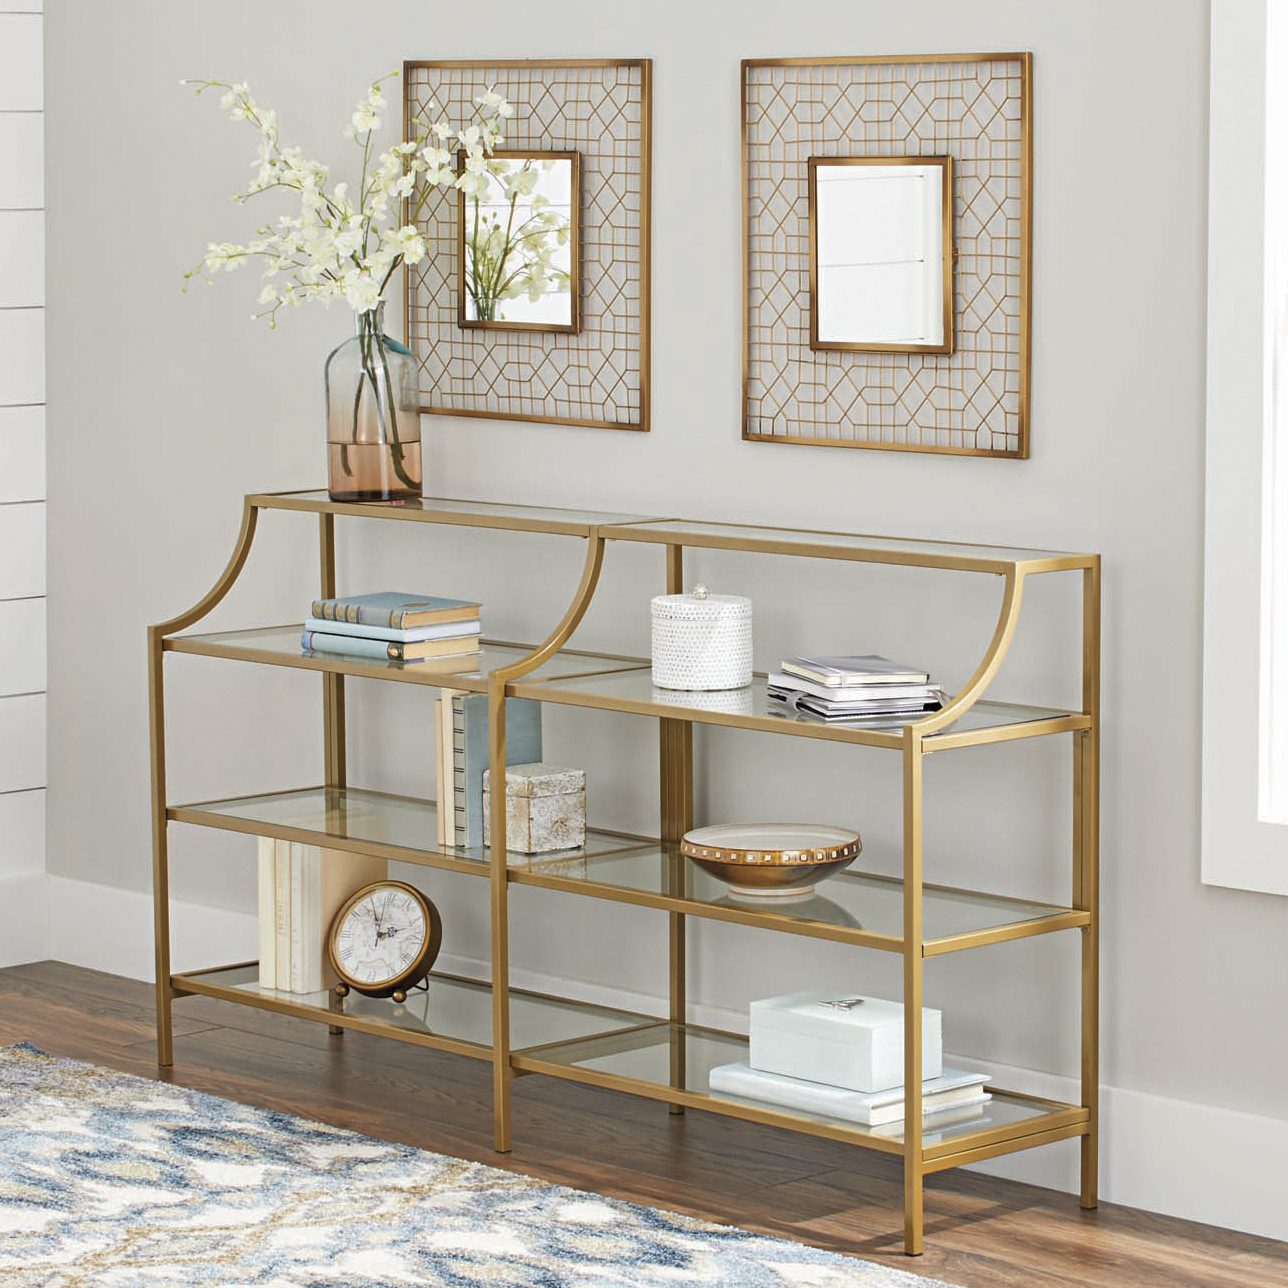 Better Homes Gardens Nola Console Table, Gold Finish 689413782828 | Ebay Within Ventana Display Console Tables (Gallery 19 of 20)